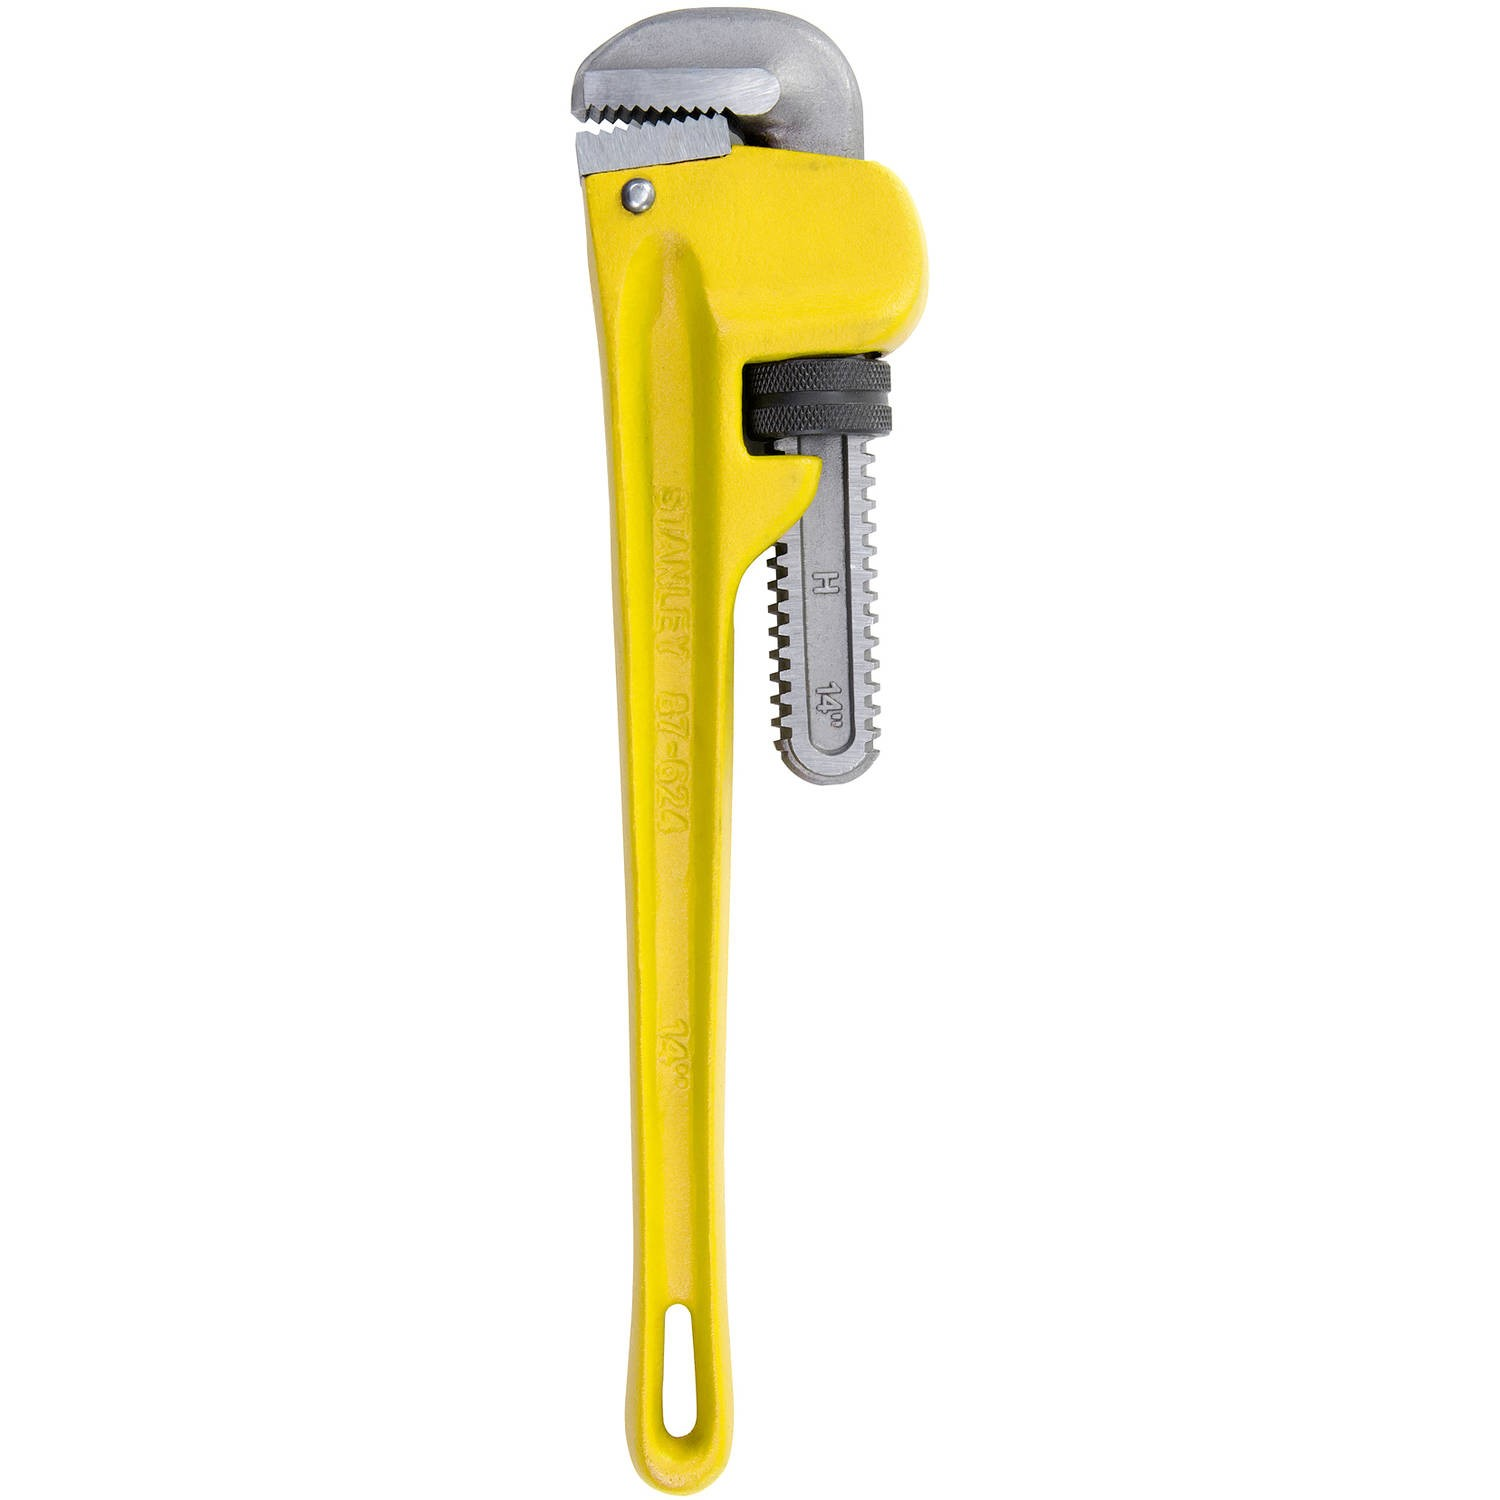 Stanley 14-Inch Pipe Wrench 87-624  sc 1 st  Walmart.com & Stanley 14-Inch Pipe Wrench 87-624 - Walmart.com